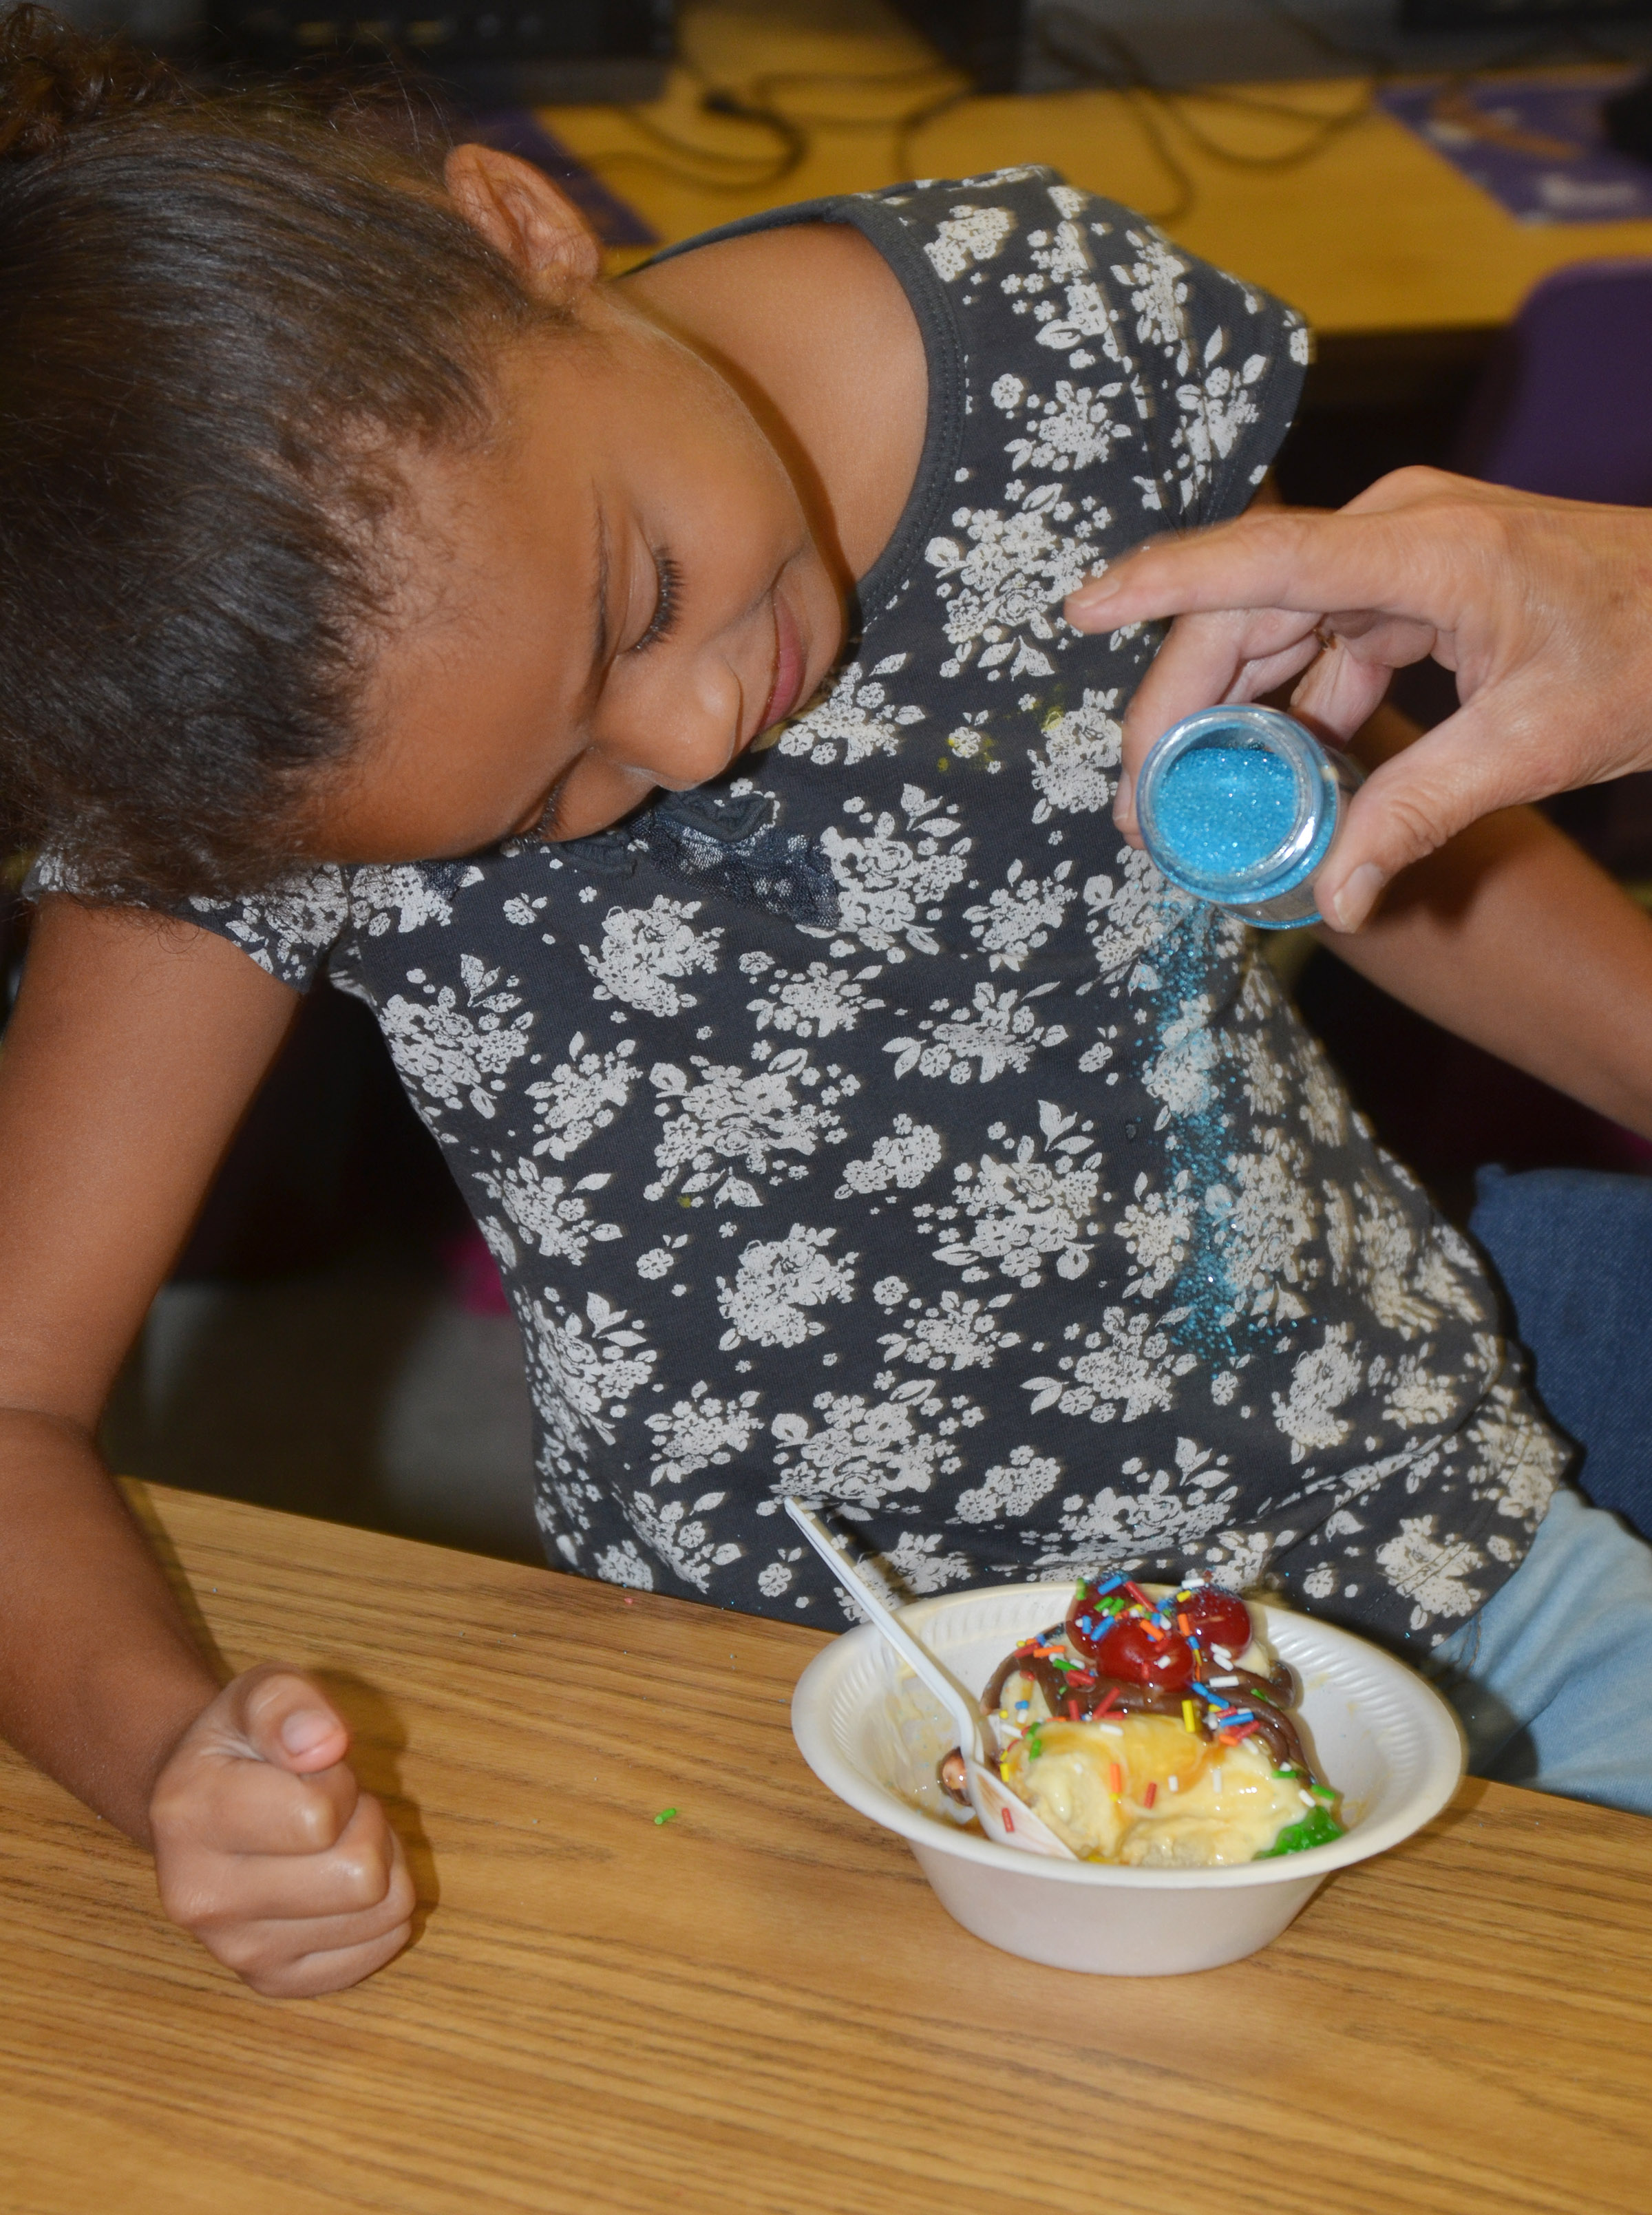 CES first-grader Jyra Welch watches as sprinkles are the finishing touch on her ice cream sundae.